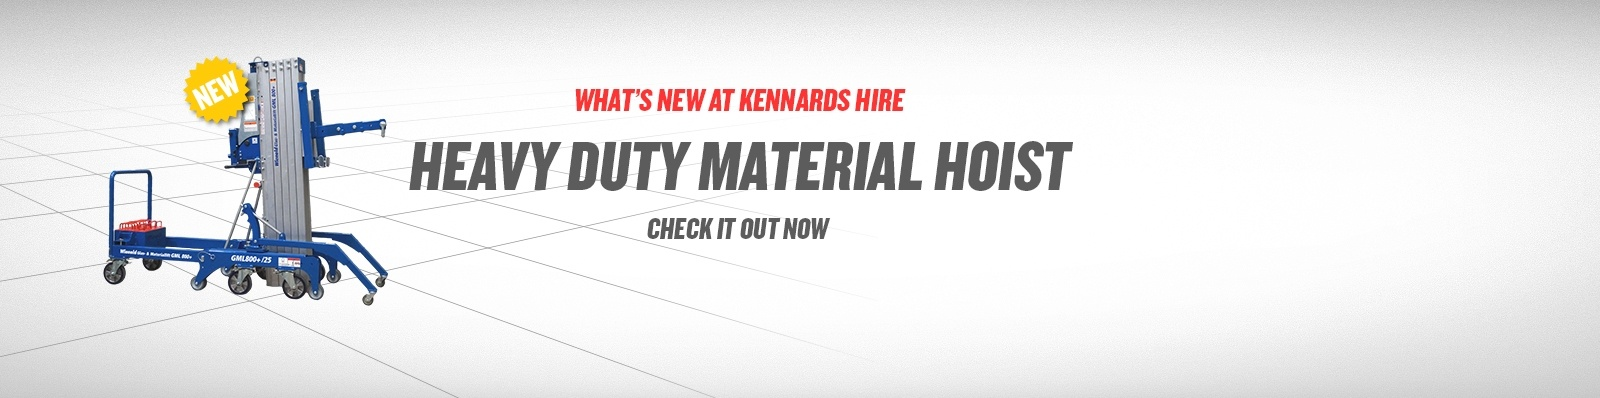 Introducing the 800kg Counter Weighted Material Hoist